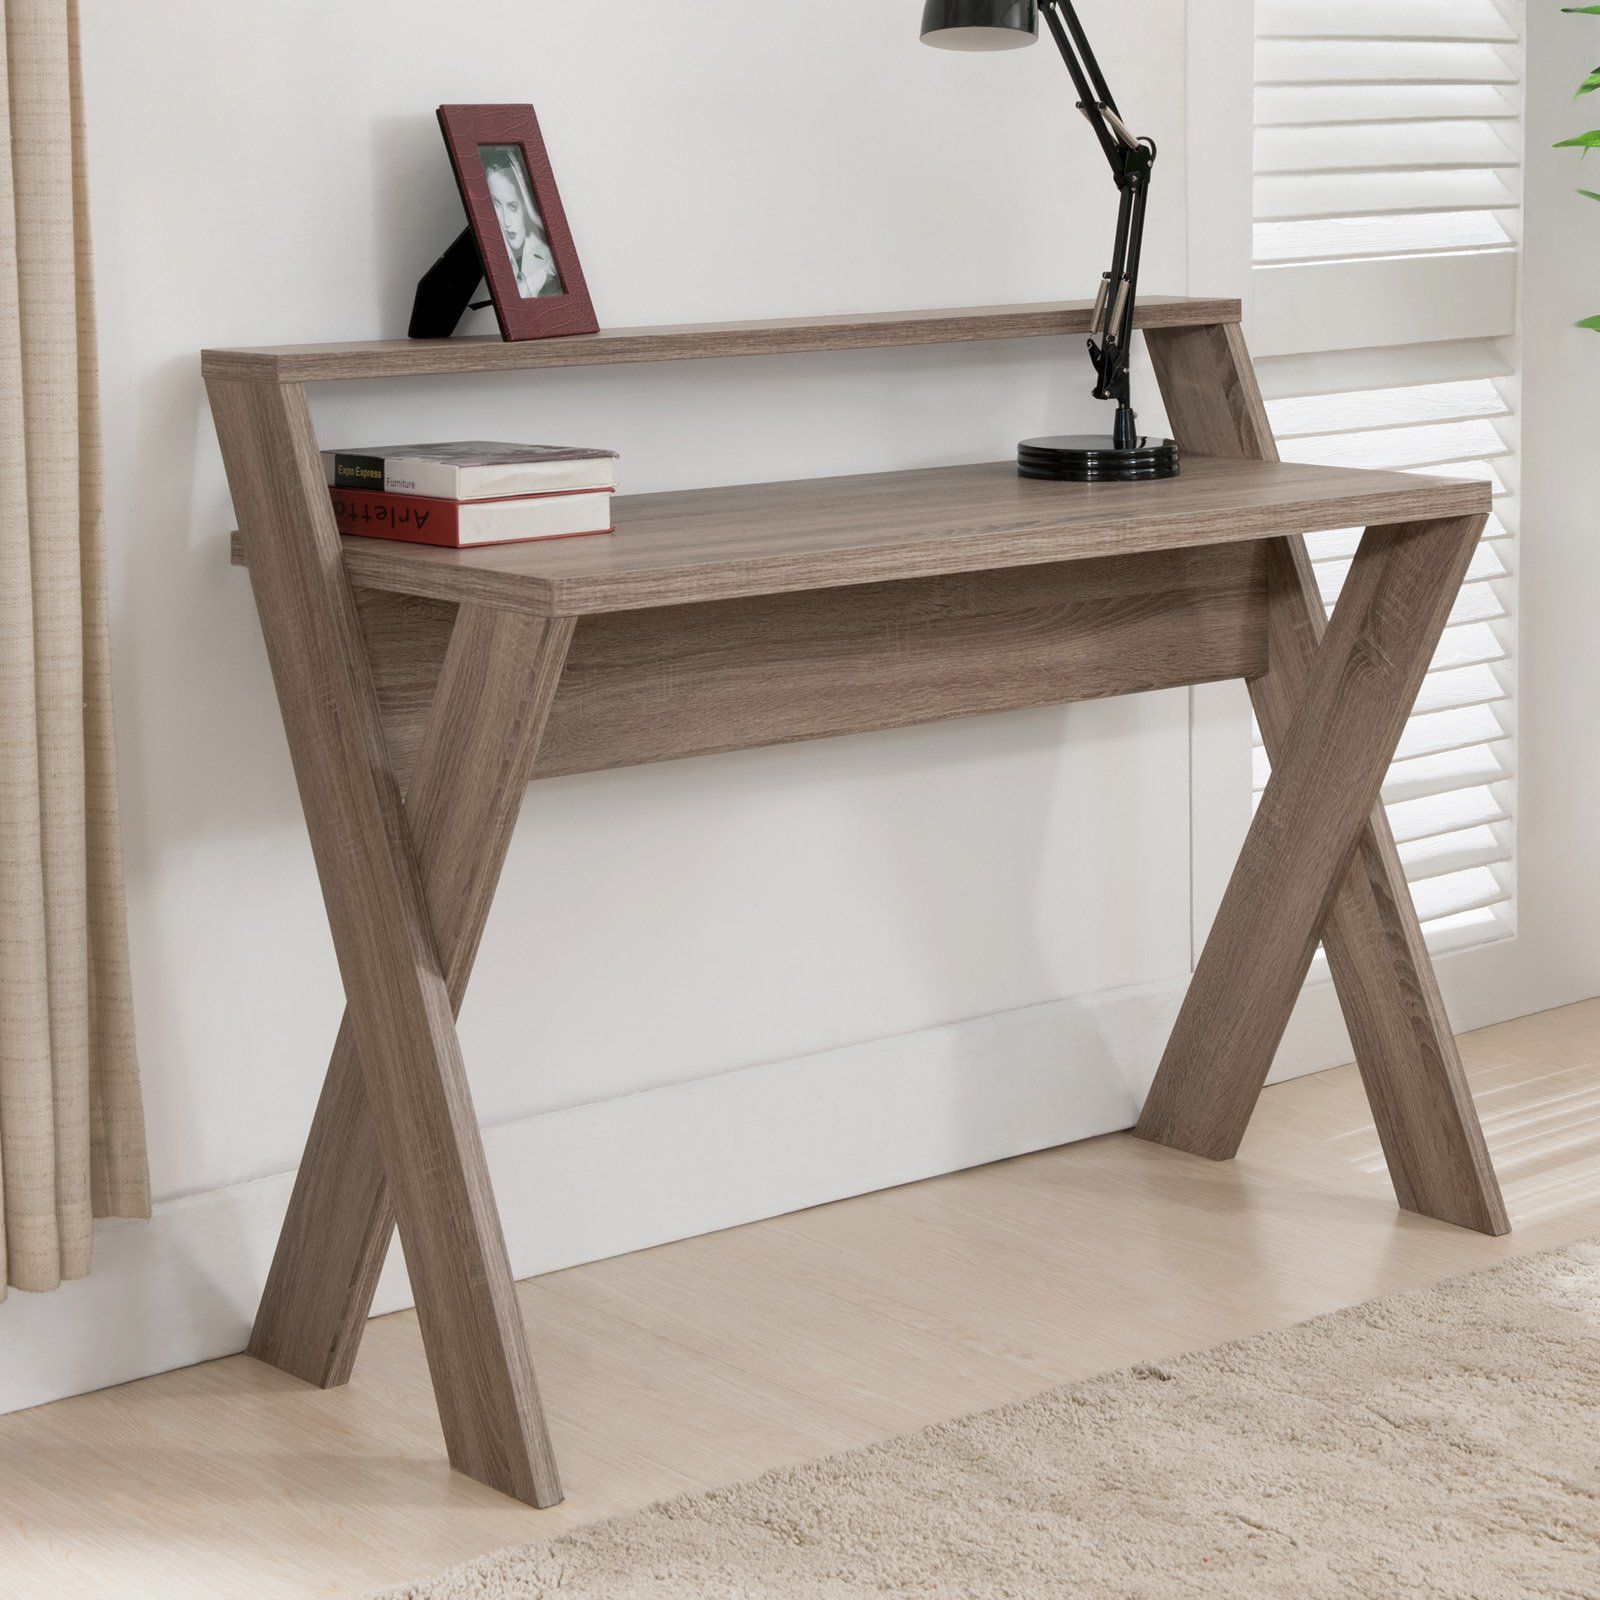 Furniture Of America Parker 2 Tier Desk Create A Beautiful Workspace All Your Own With The Furnitur Modern Wood Furniture Furniture Diy Wood Pallet Furniture